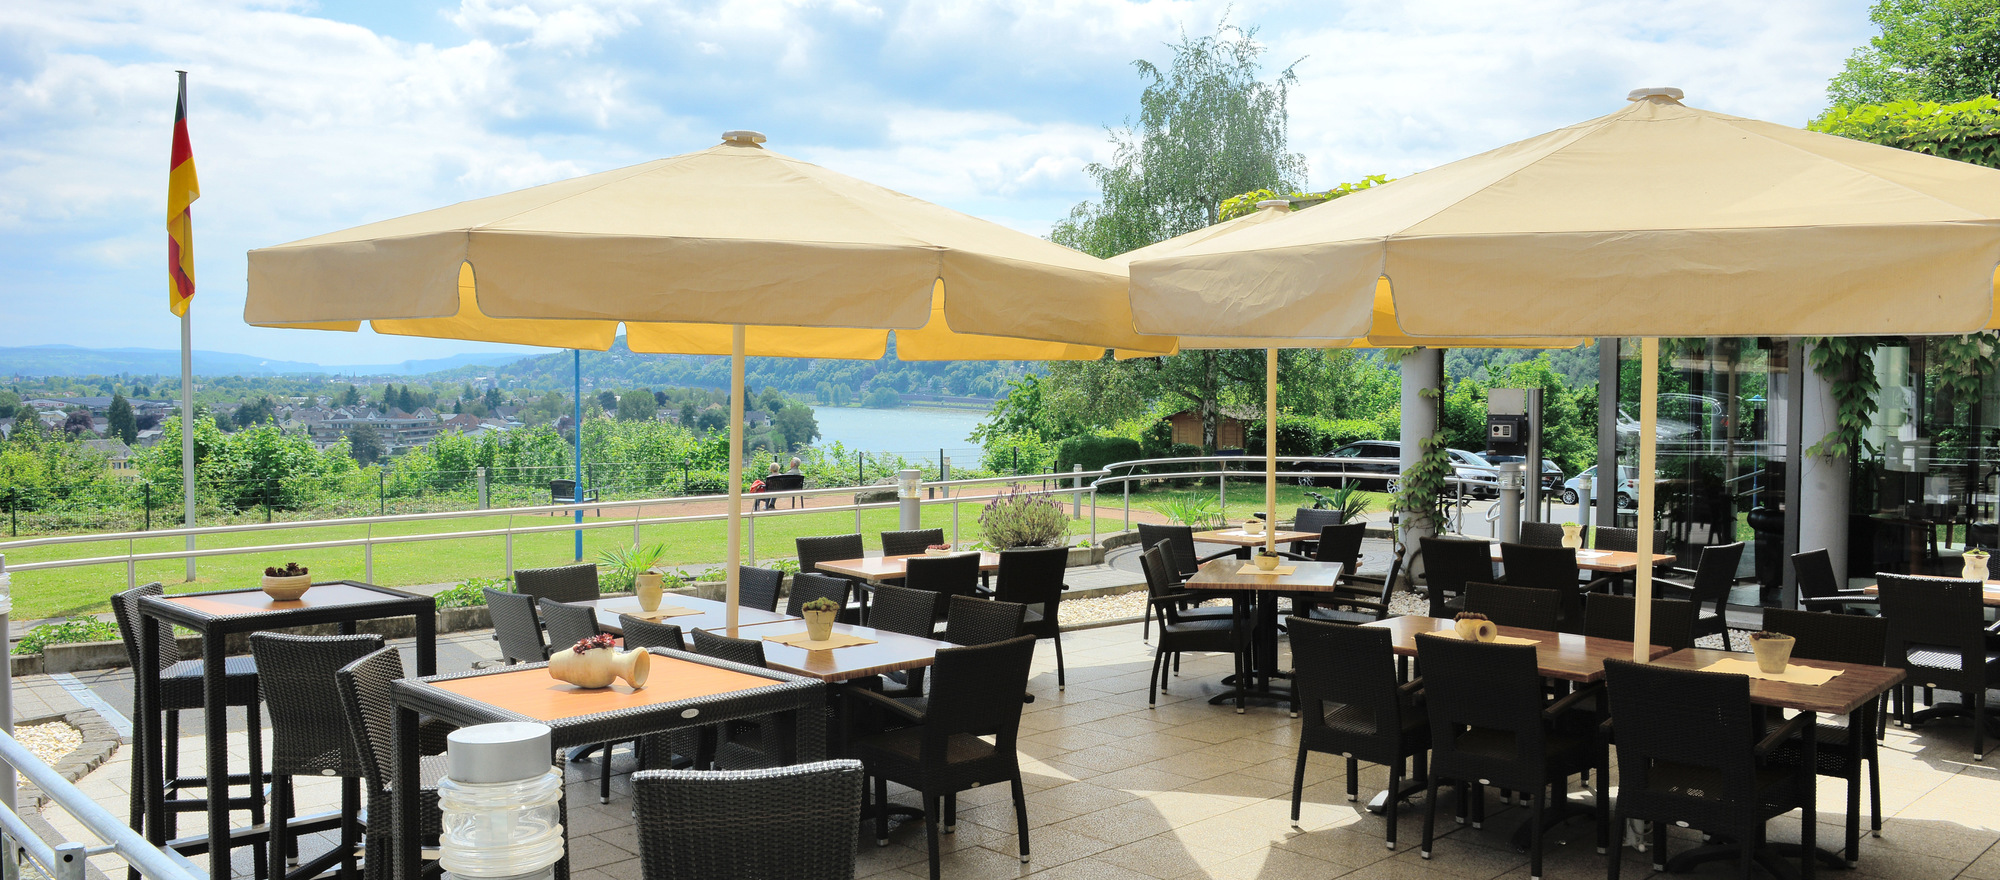 The terrace at the 3-star-superior hotel Ringhotel Haus Oberwinter in Remagen/Bonn is full of atmosphere with a panoramic view